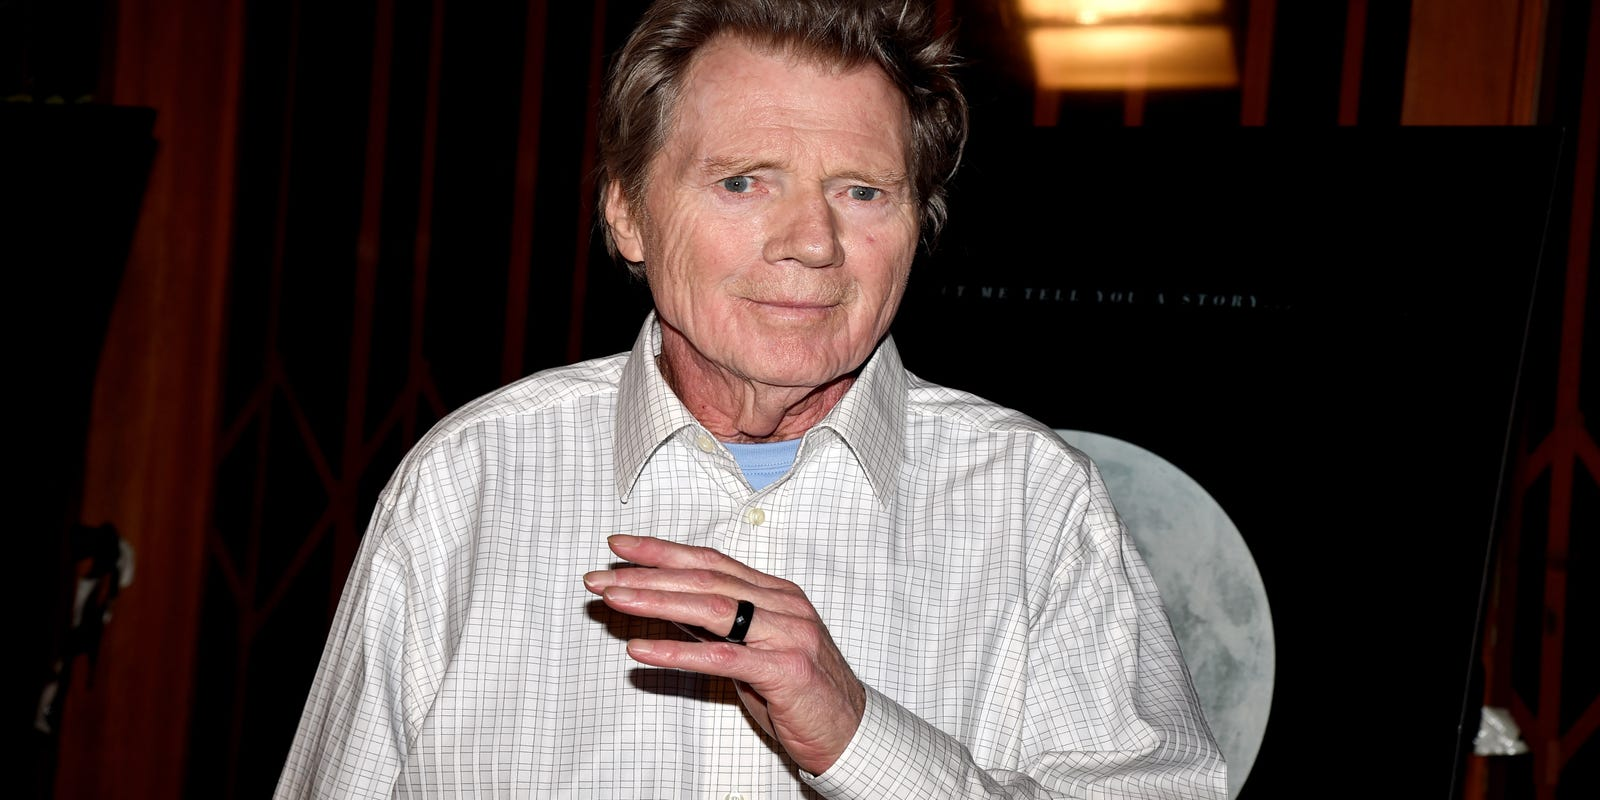 Actor Michael Parks Dies 60s Teen Idol Became A Tarantino Favorite Radio Wave Diagram Http Hollywoodbollywood Co In Hoadmin